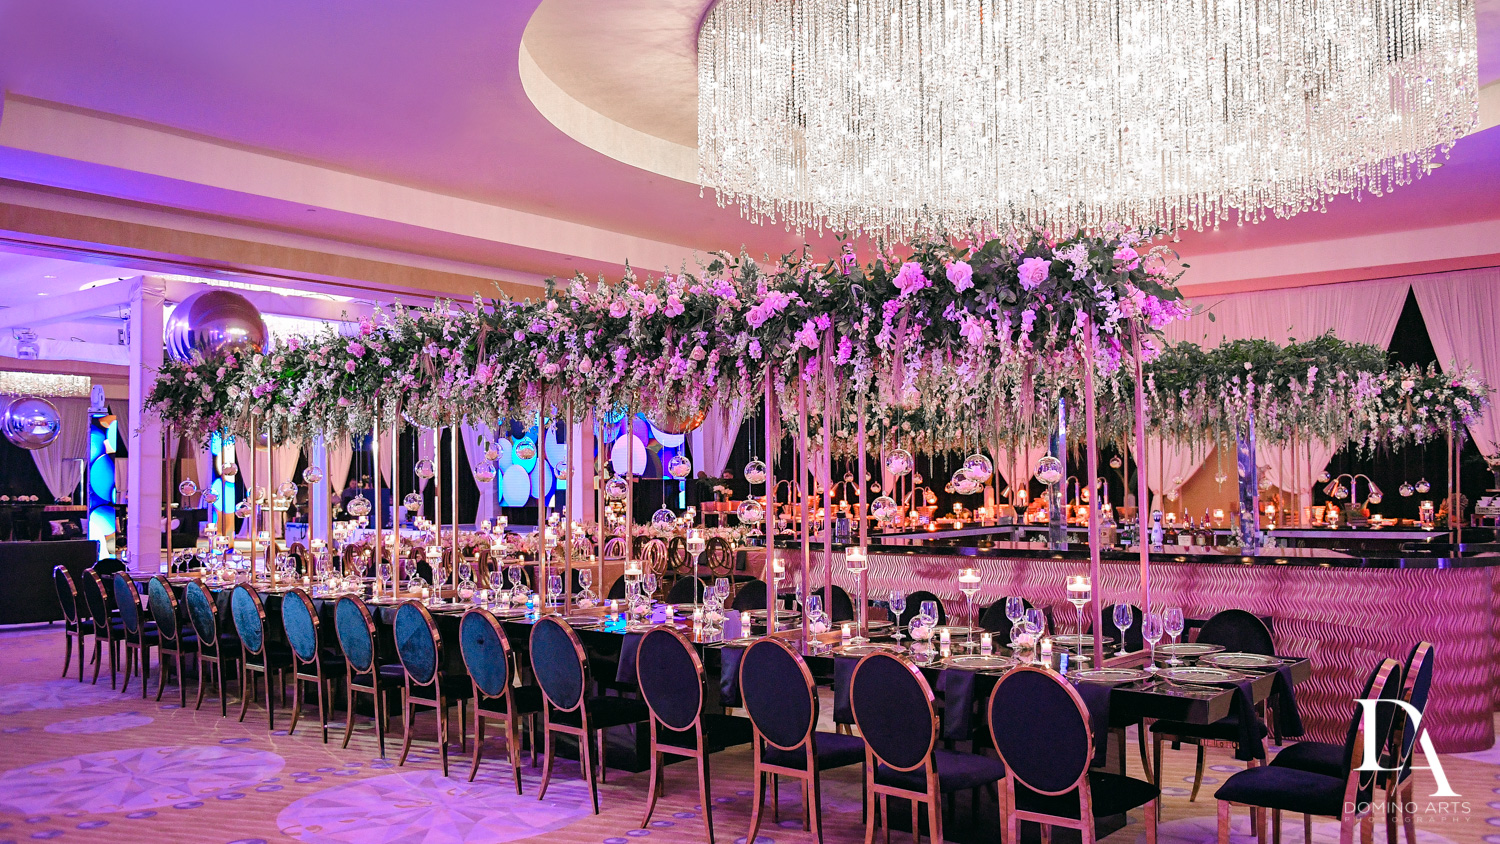 Masquerade Ball Bat Mitzvah at Ritz Carlton Fort Lauderdale by Domino Arts Photography